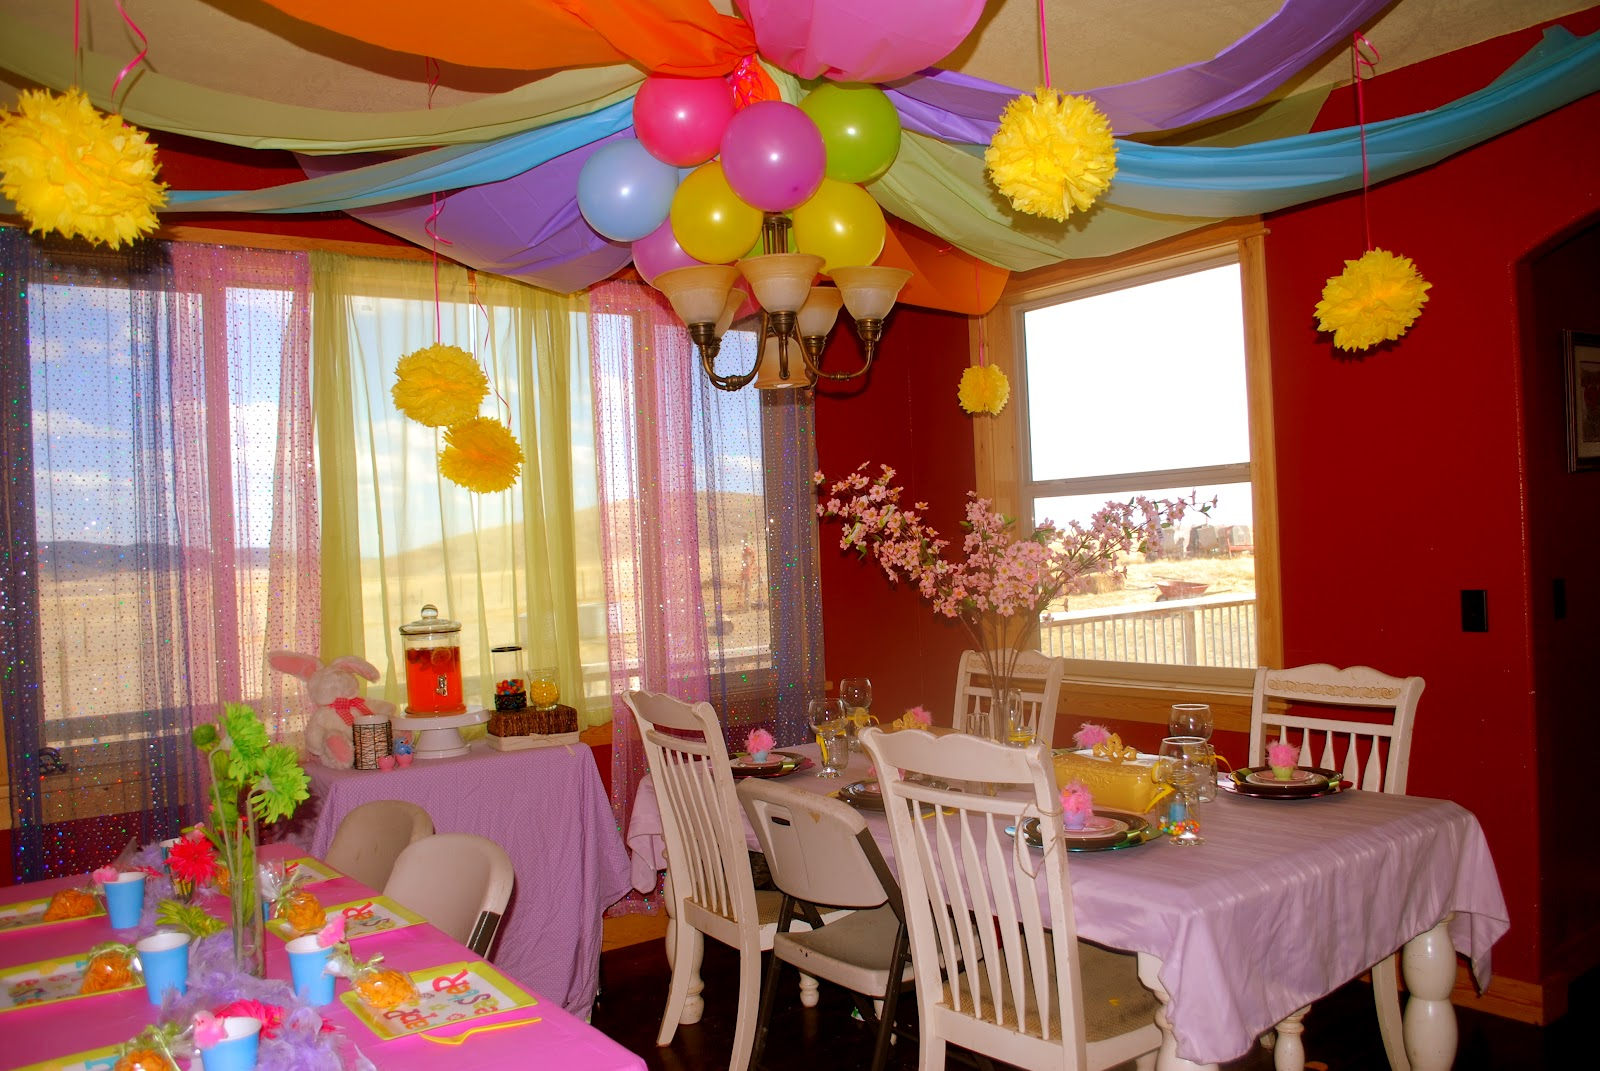 The Thrifty Deafies Easter Decorate Fancy For Less